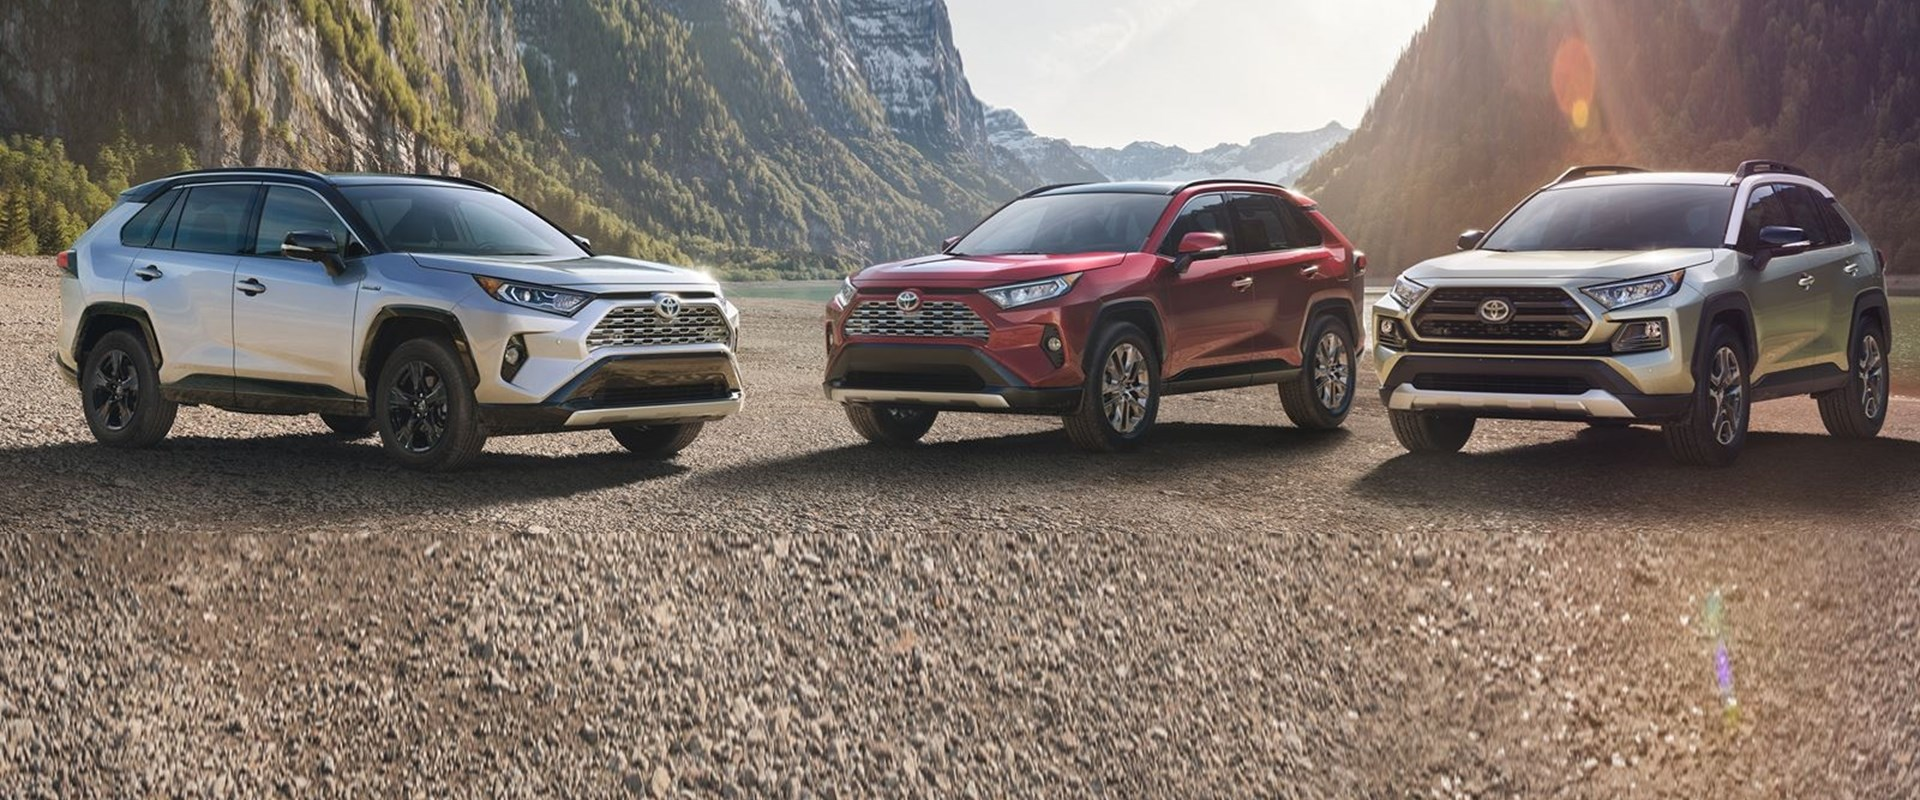 The 2019 Toyota RAV4 Hybrid Will Have A 600-Mile Range - CarBuzz